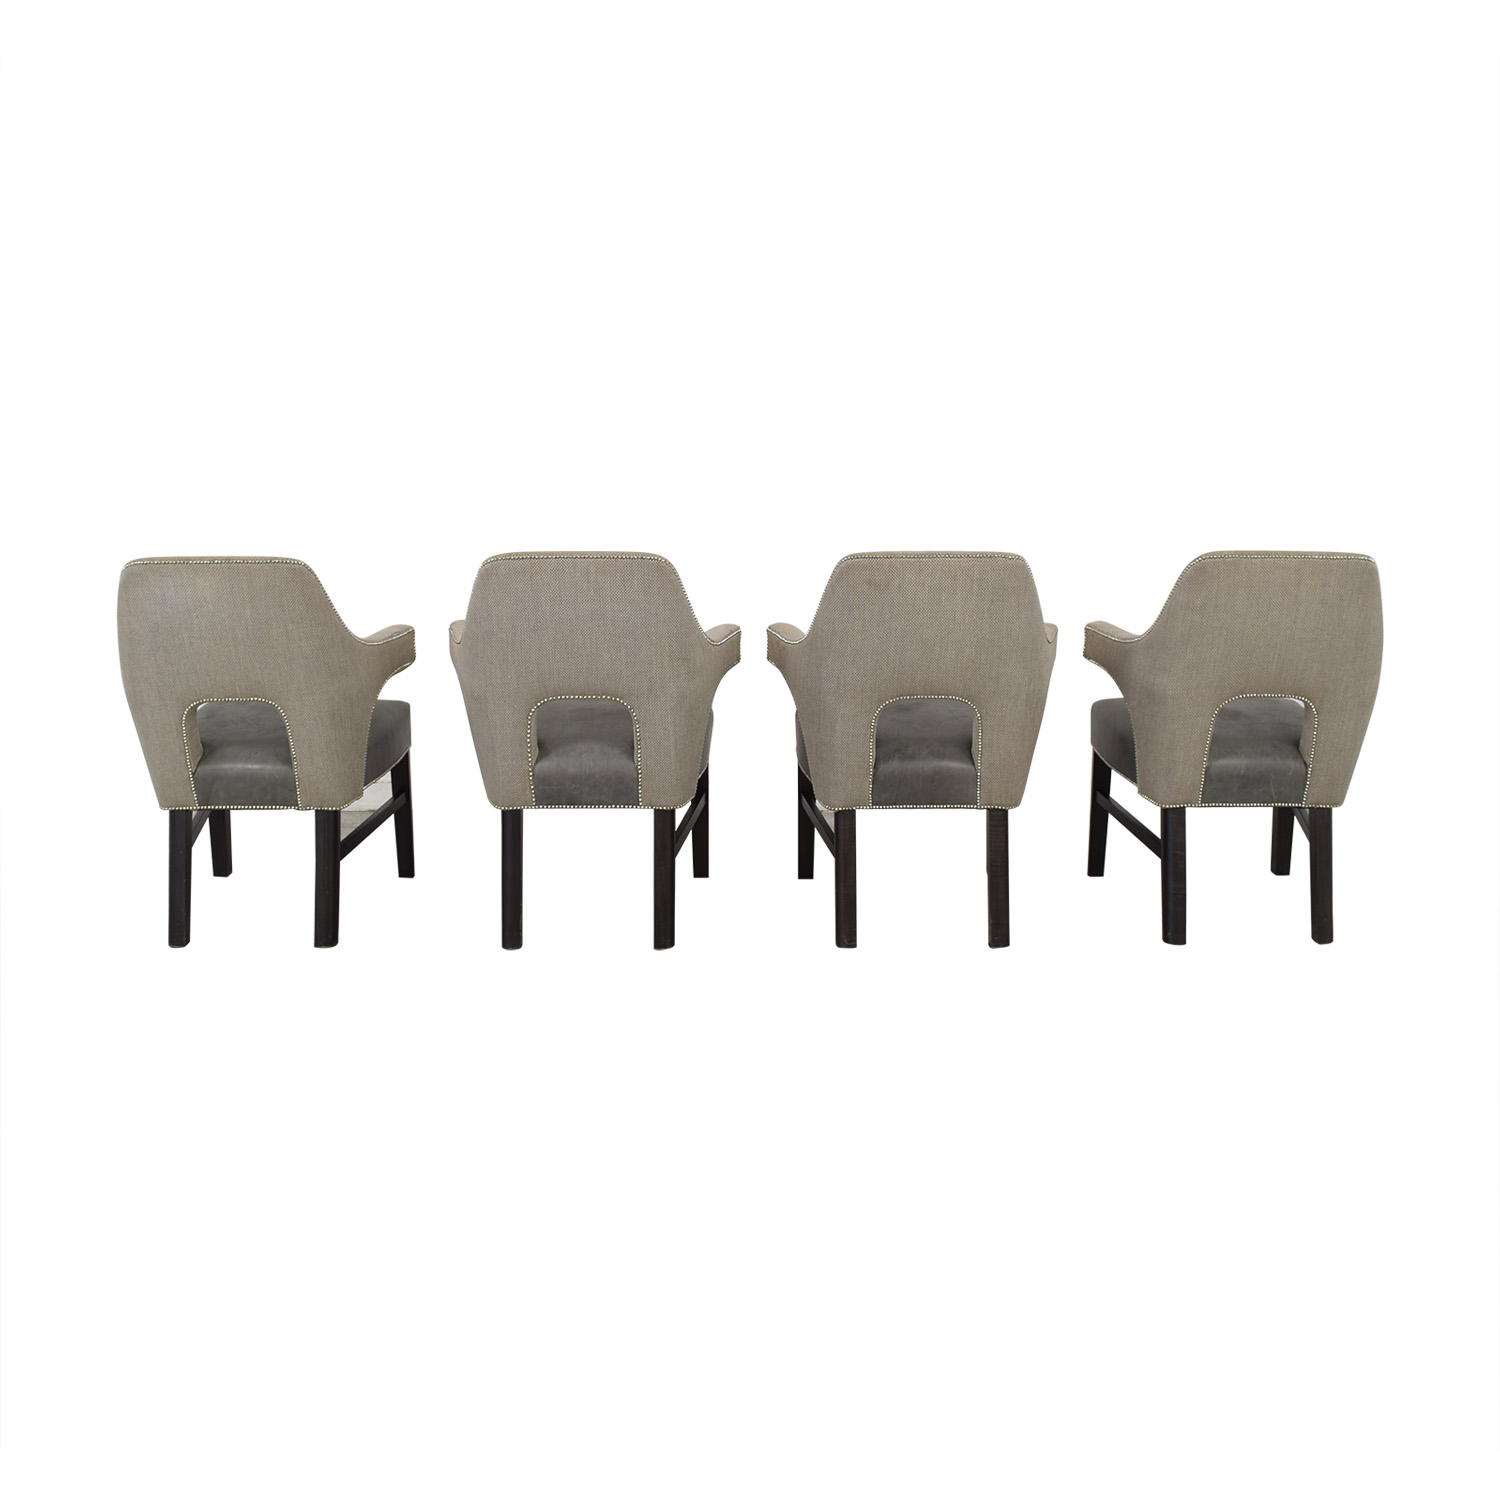 Thom Filicia Thom Filicia Modern Dining Chairs for sale